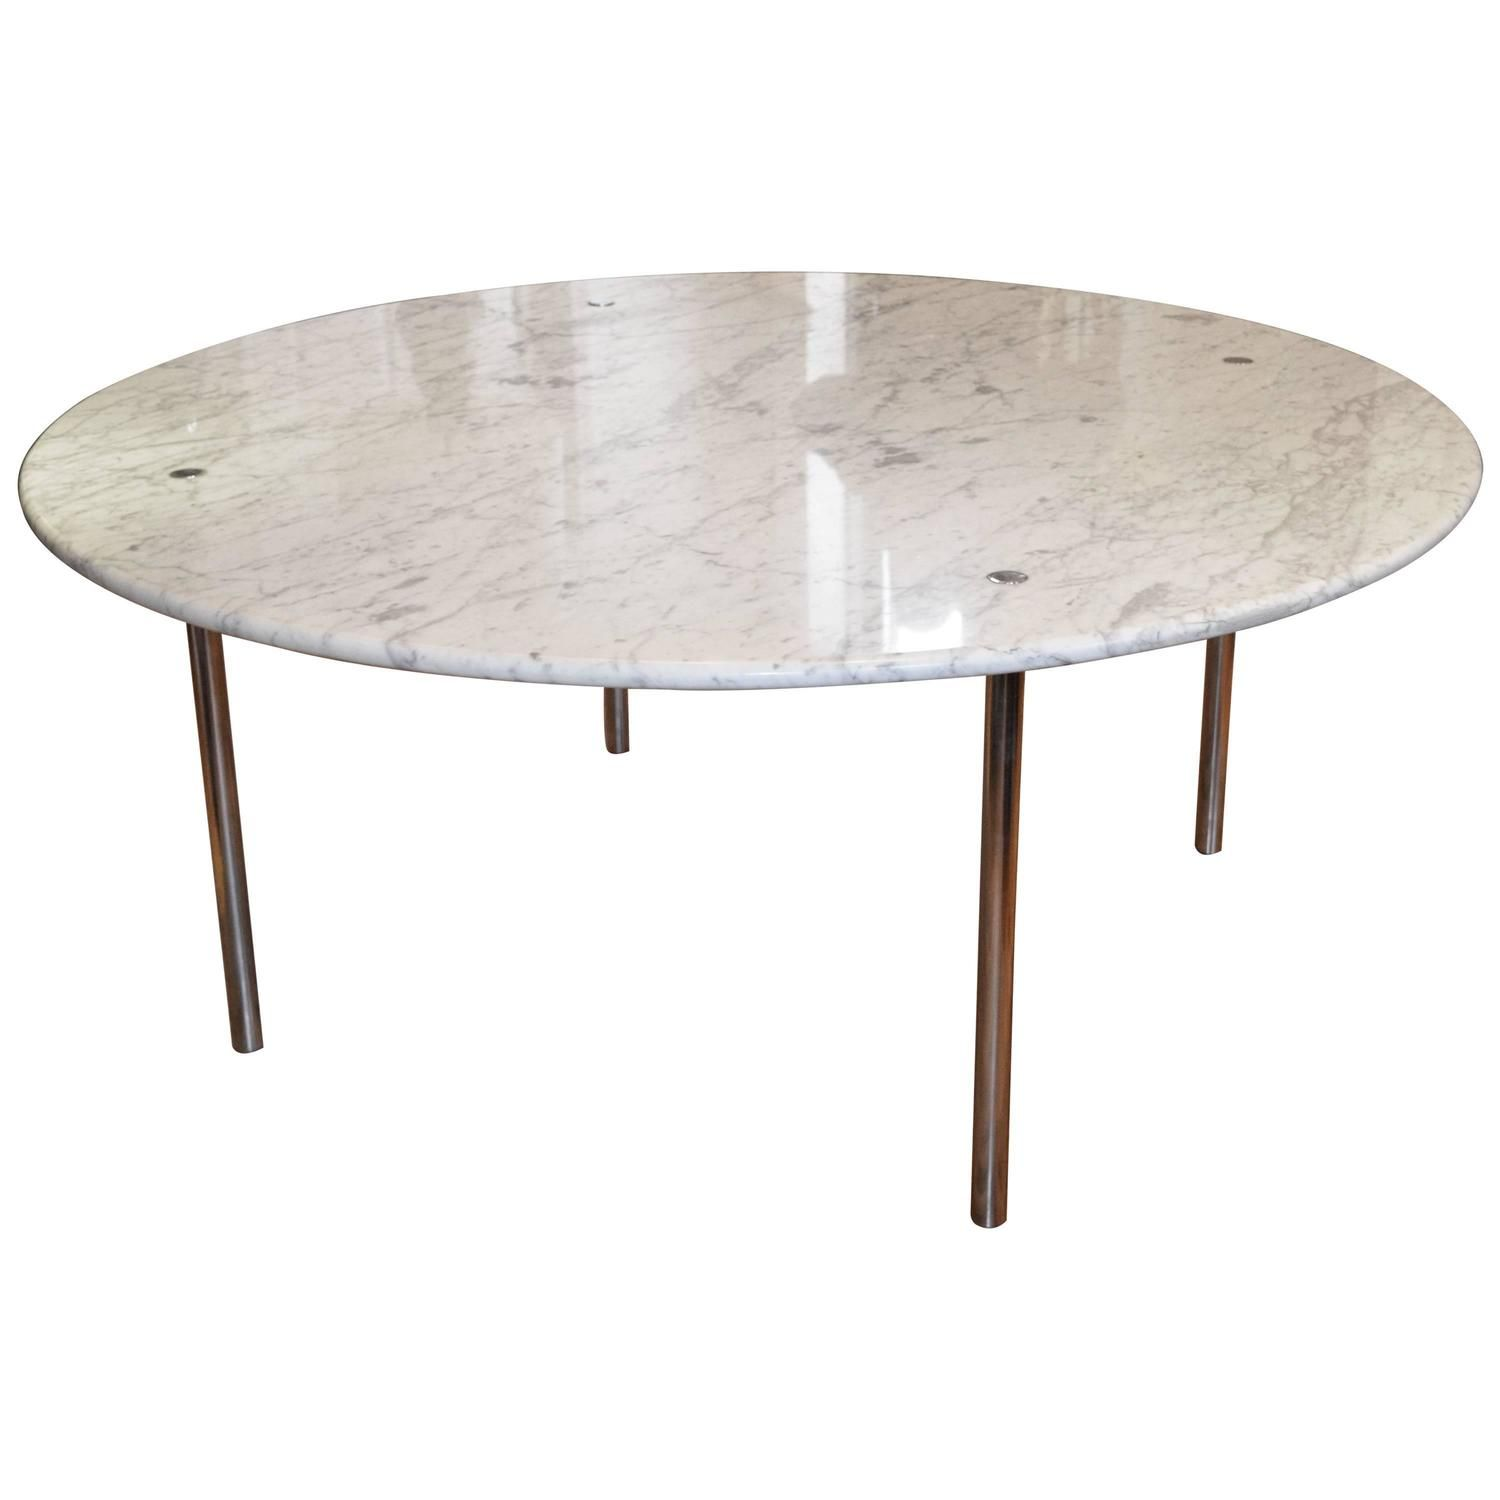 Monumental Round Marble Dining Table by Katavolos Littell & Kelly